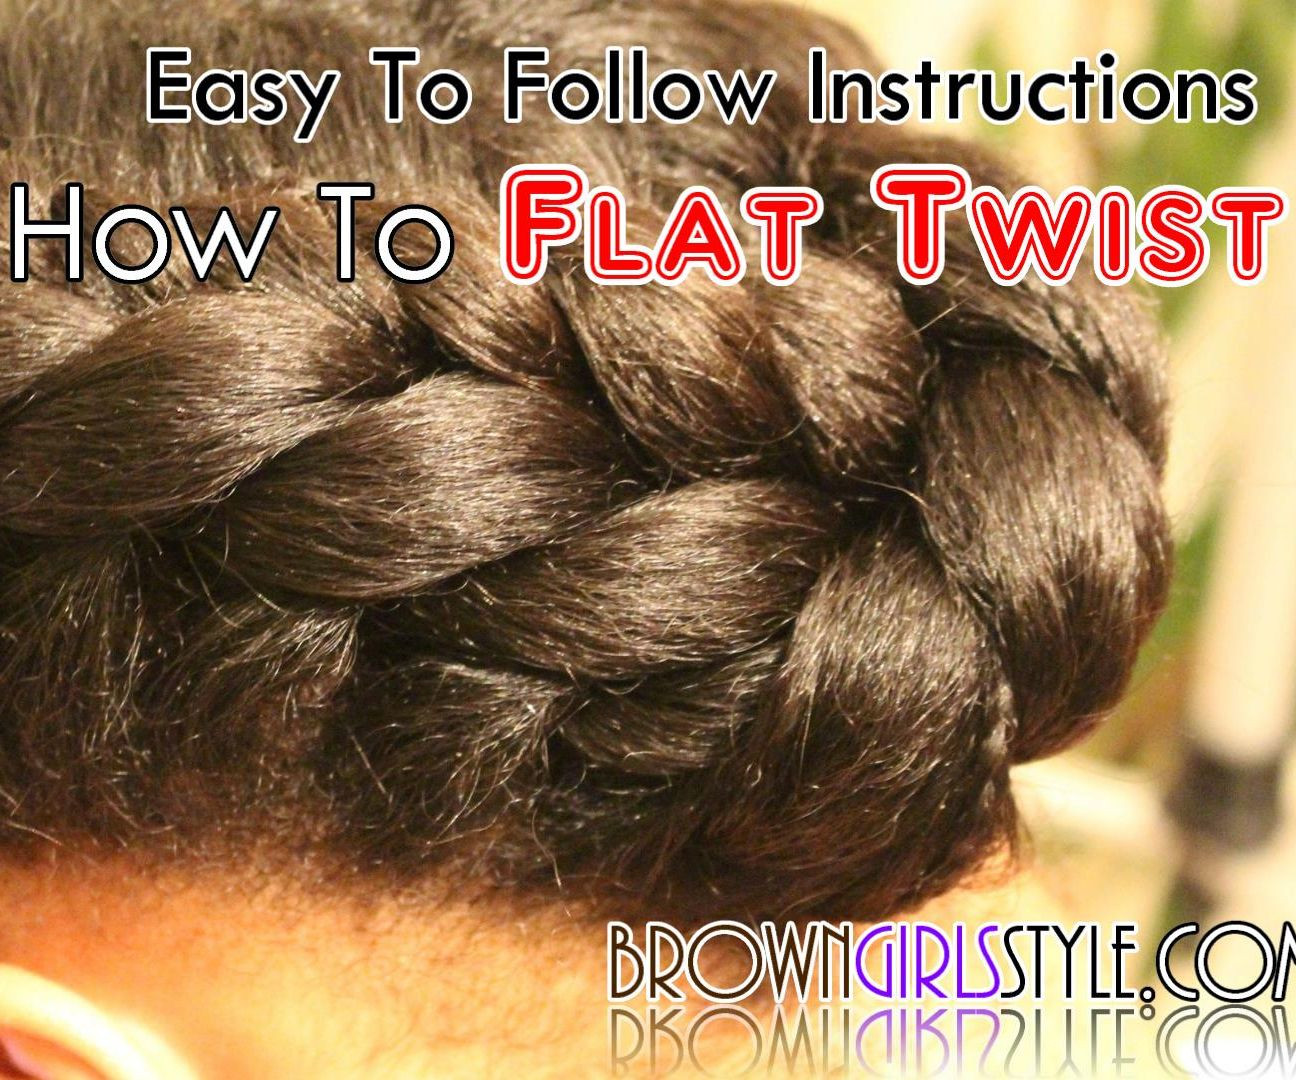 How to Flat Twist Tutorial: 7 Steps (with Pictures)